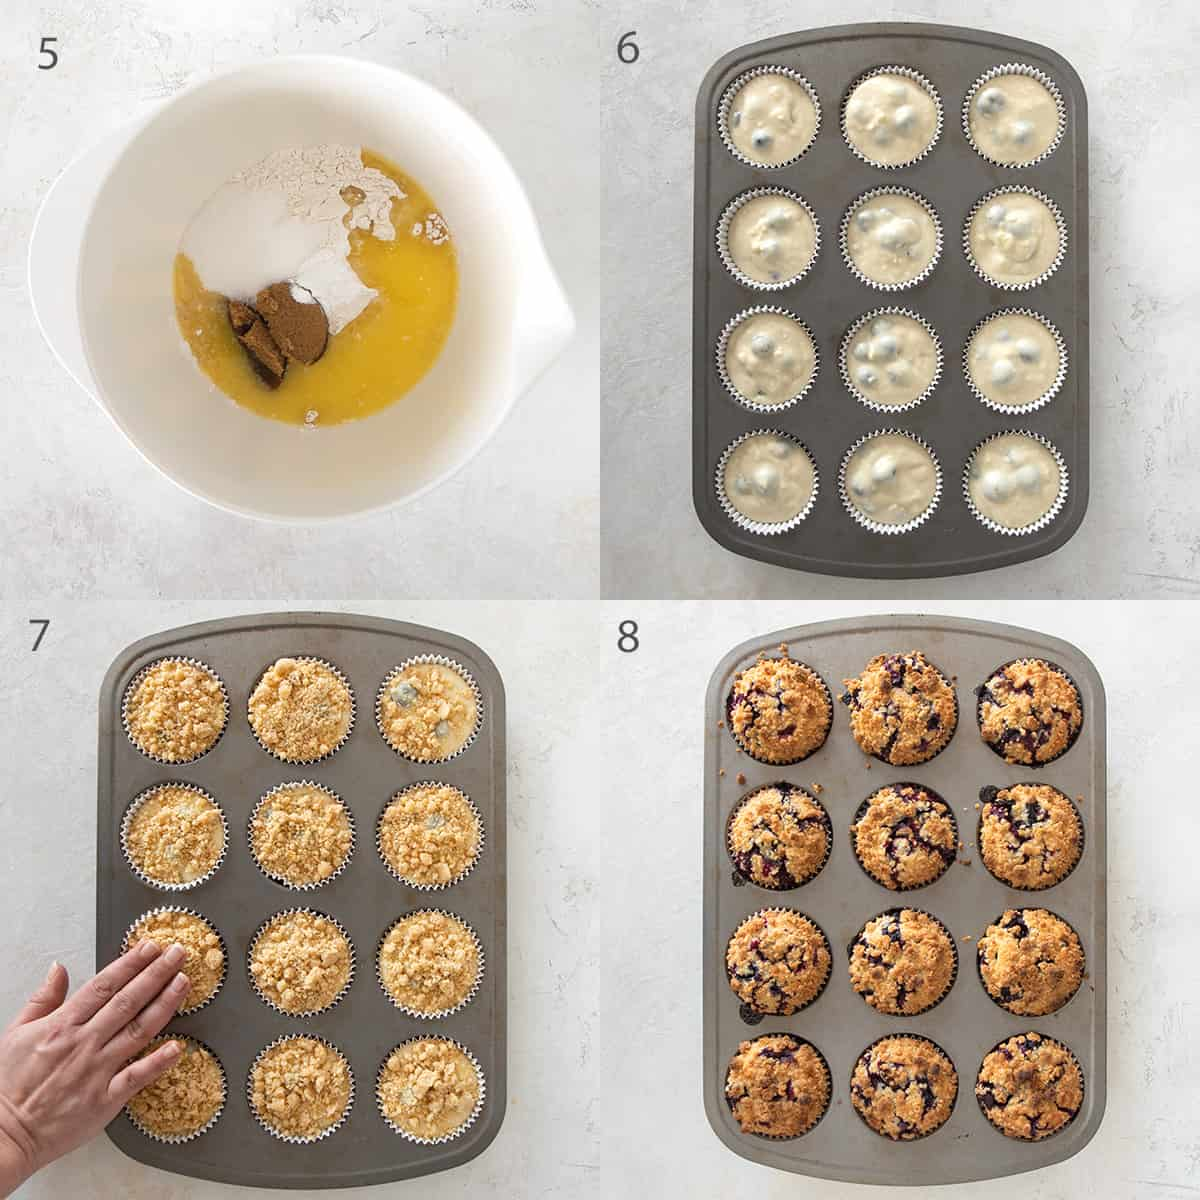 Collage of photos showing assembly of lemon blueberry muffins with crumb topping.